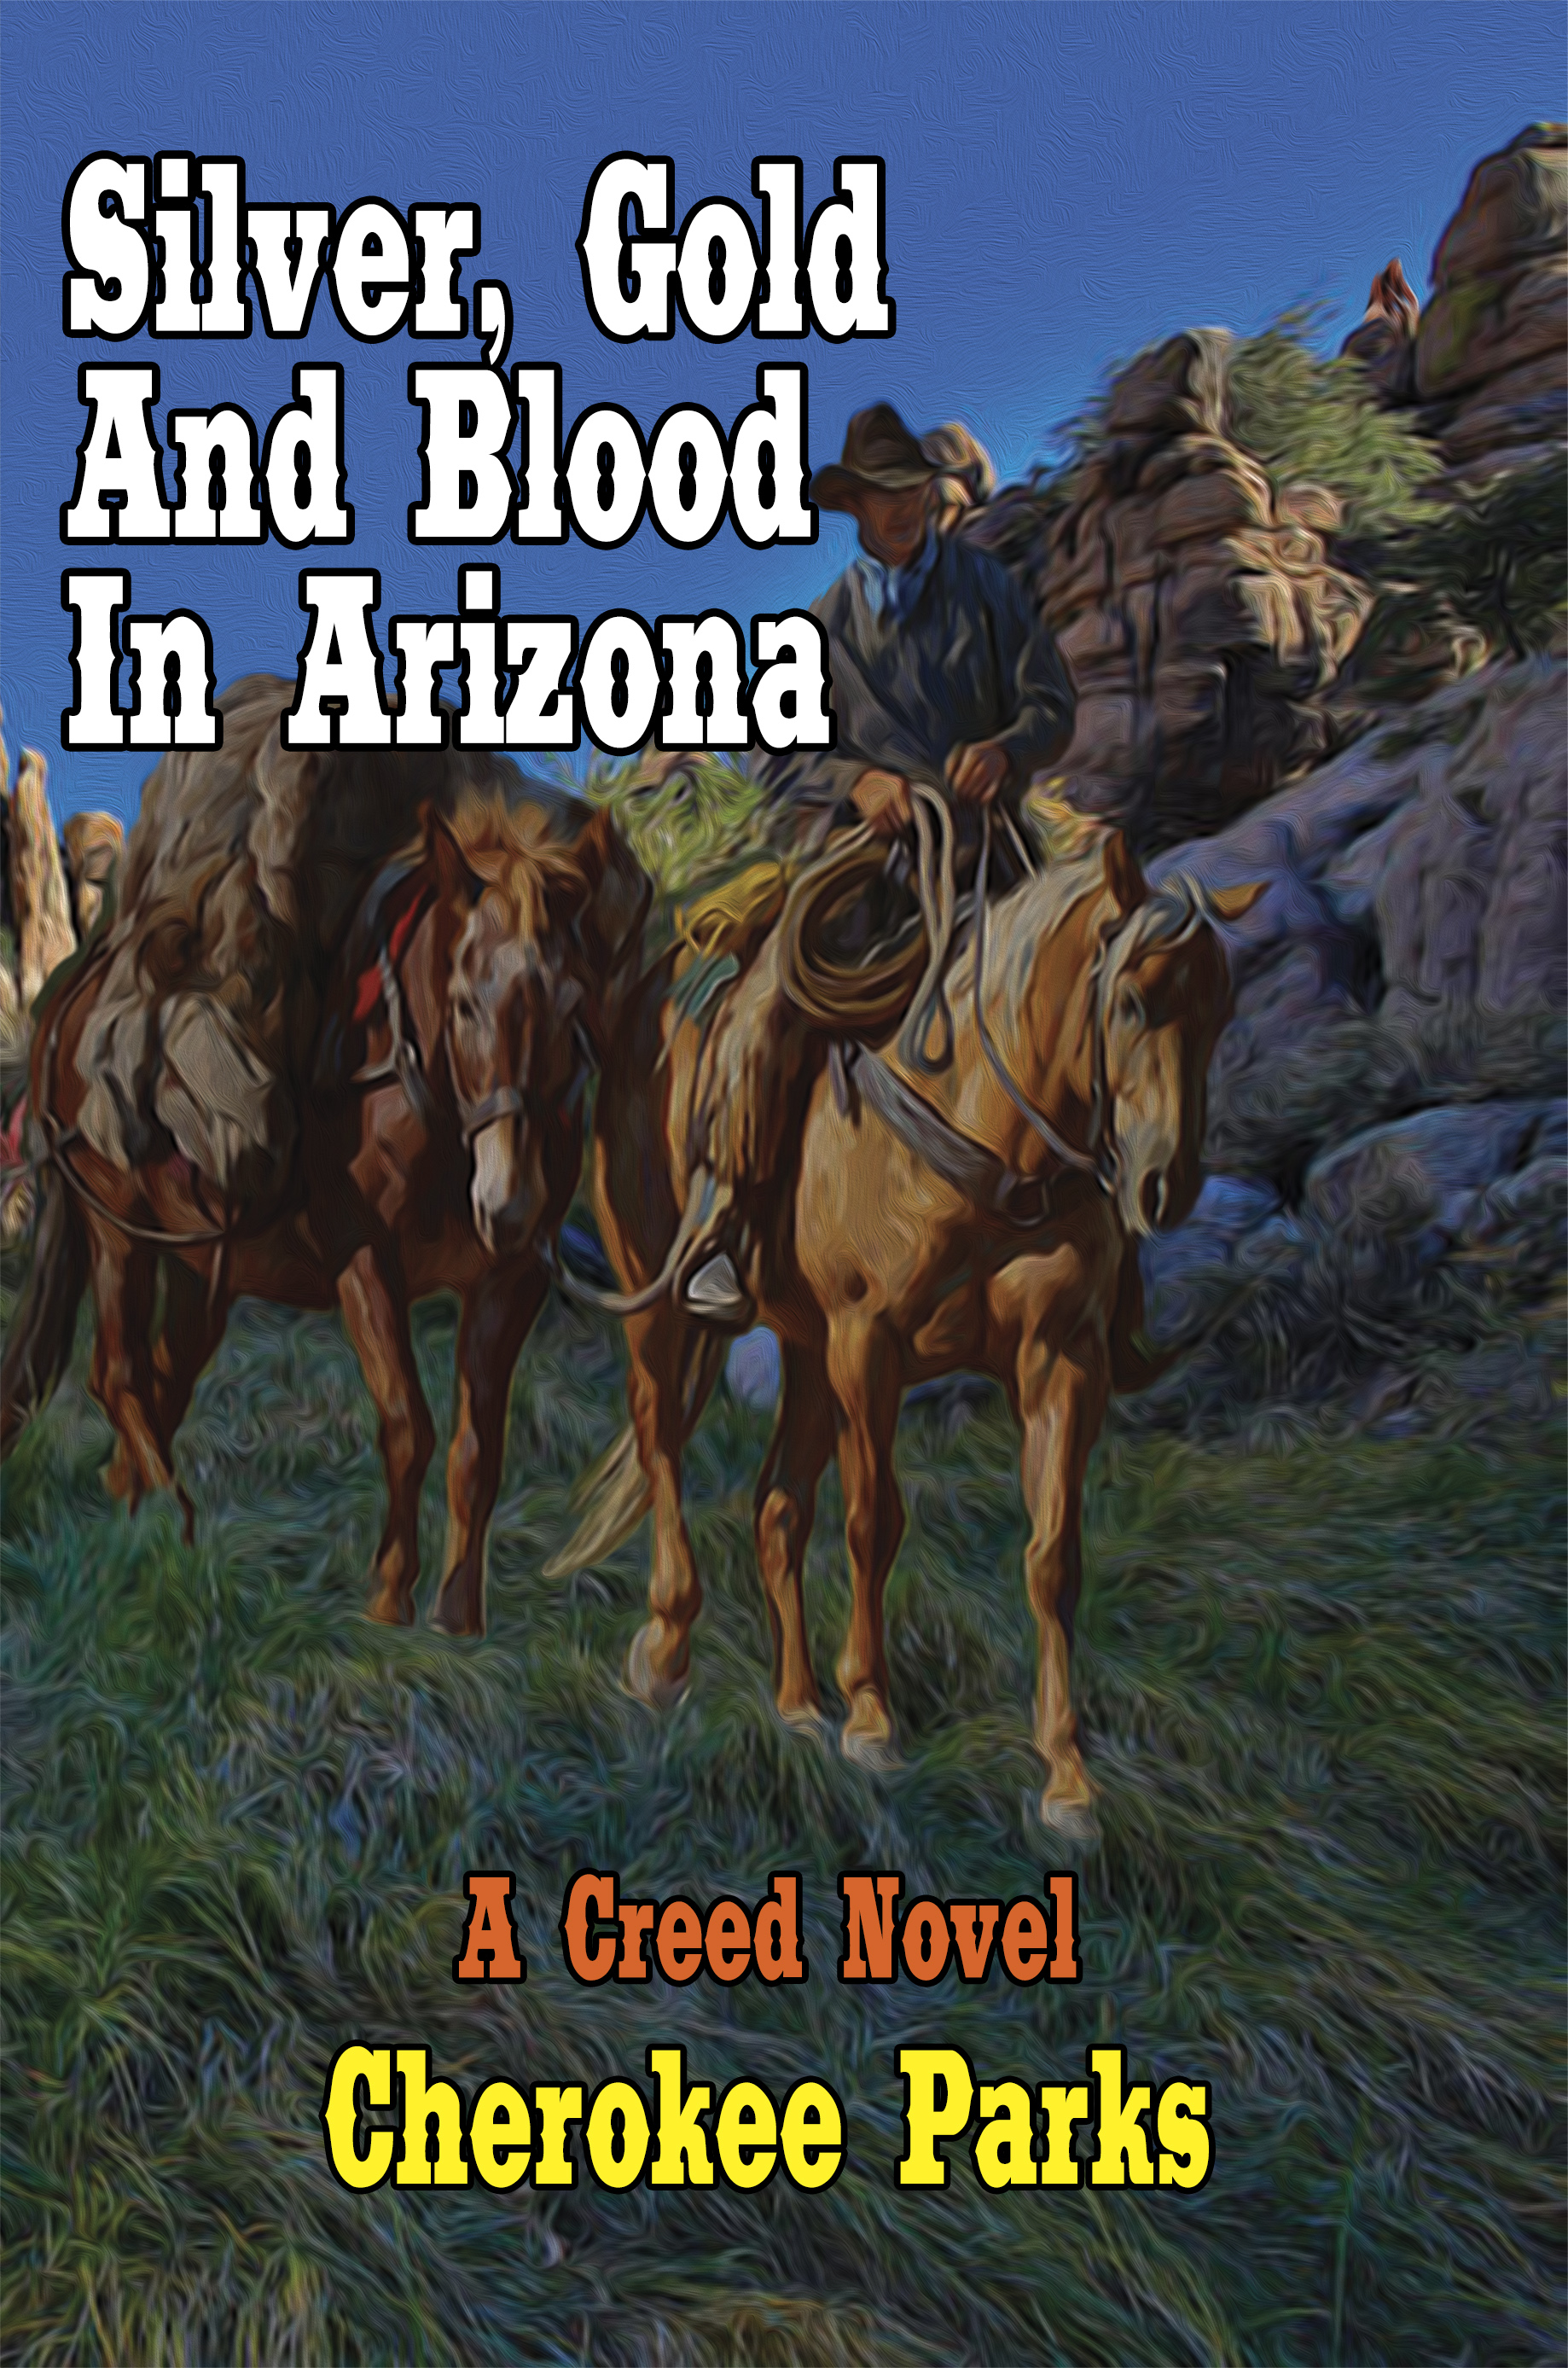 Silver Goold and Blood in Arizona